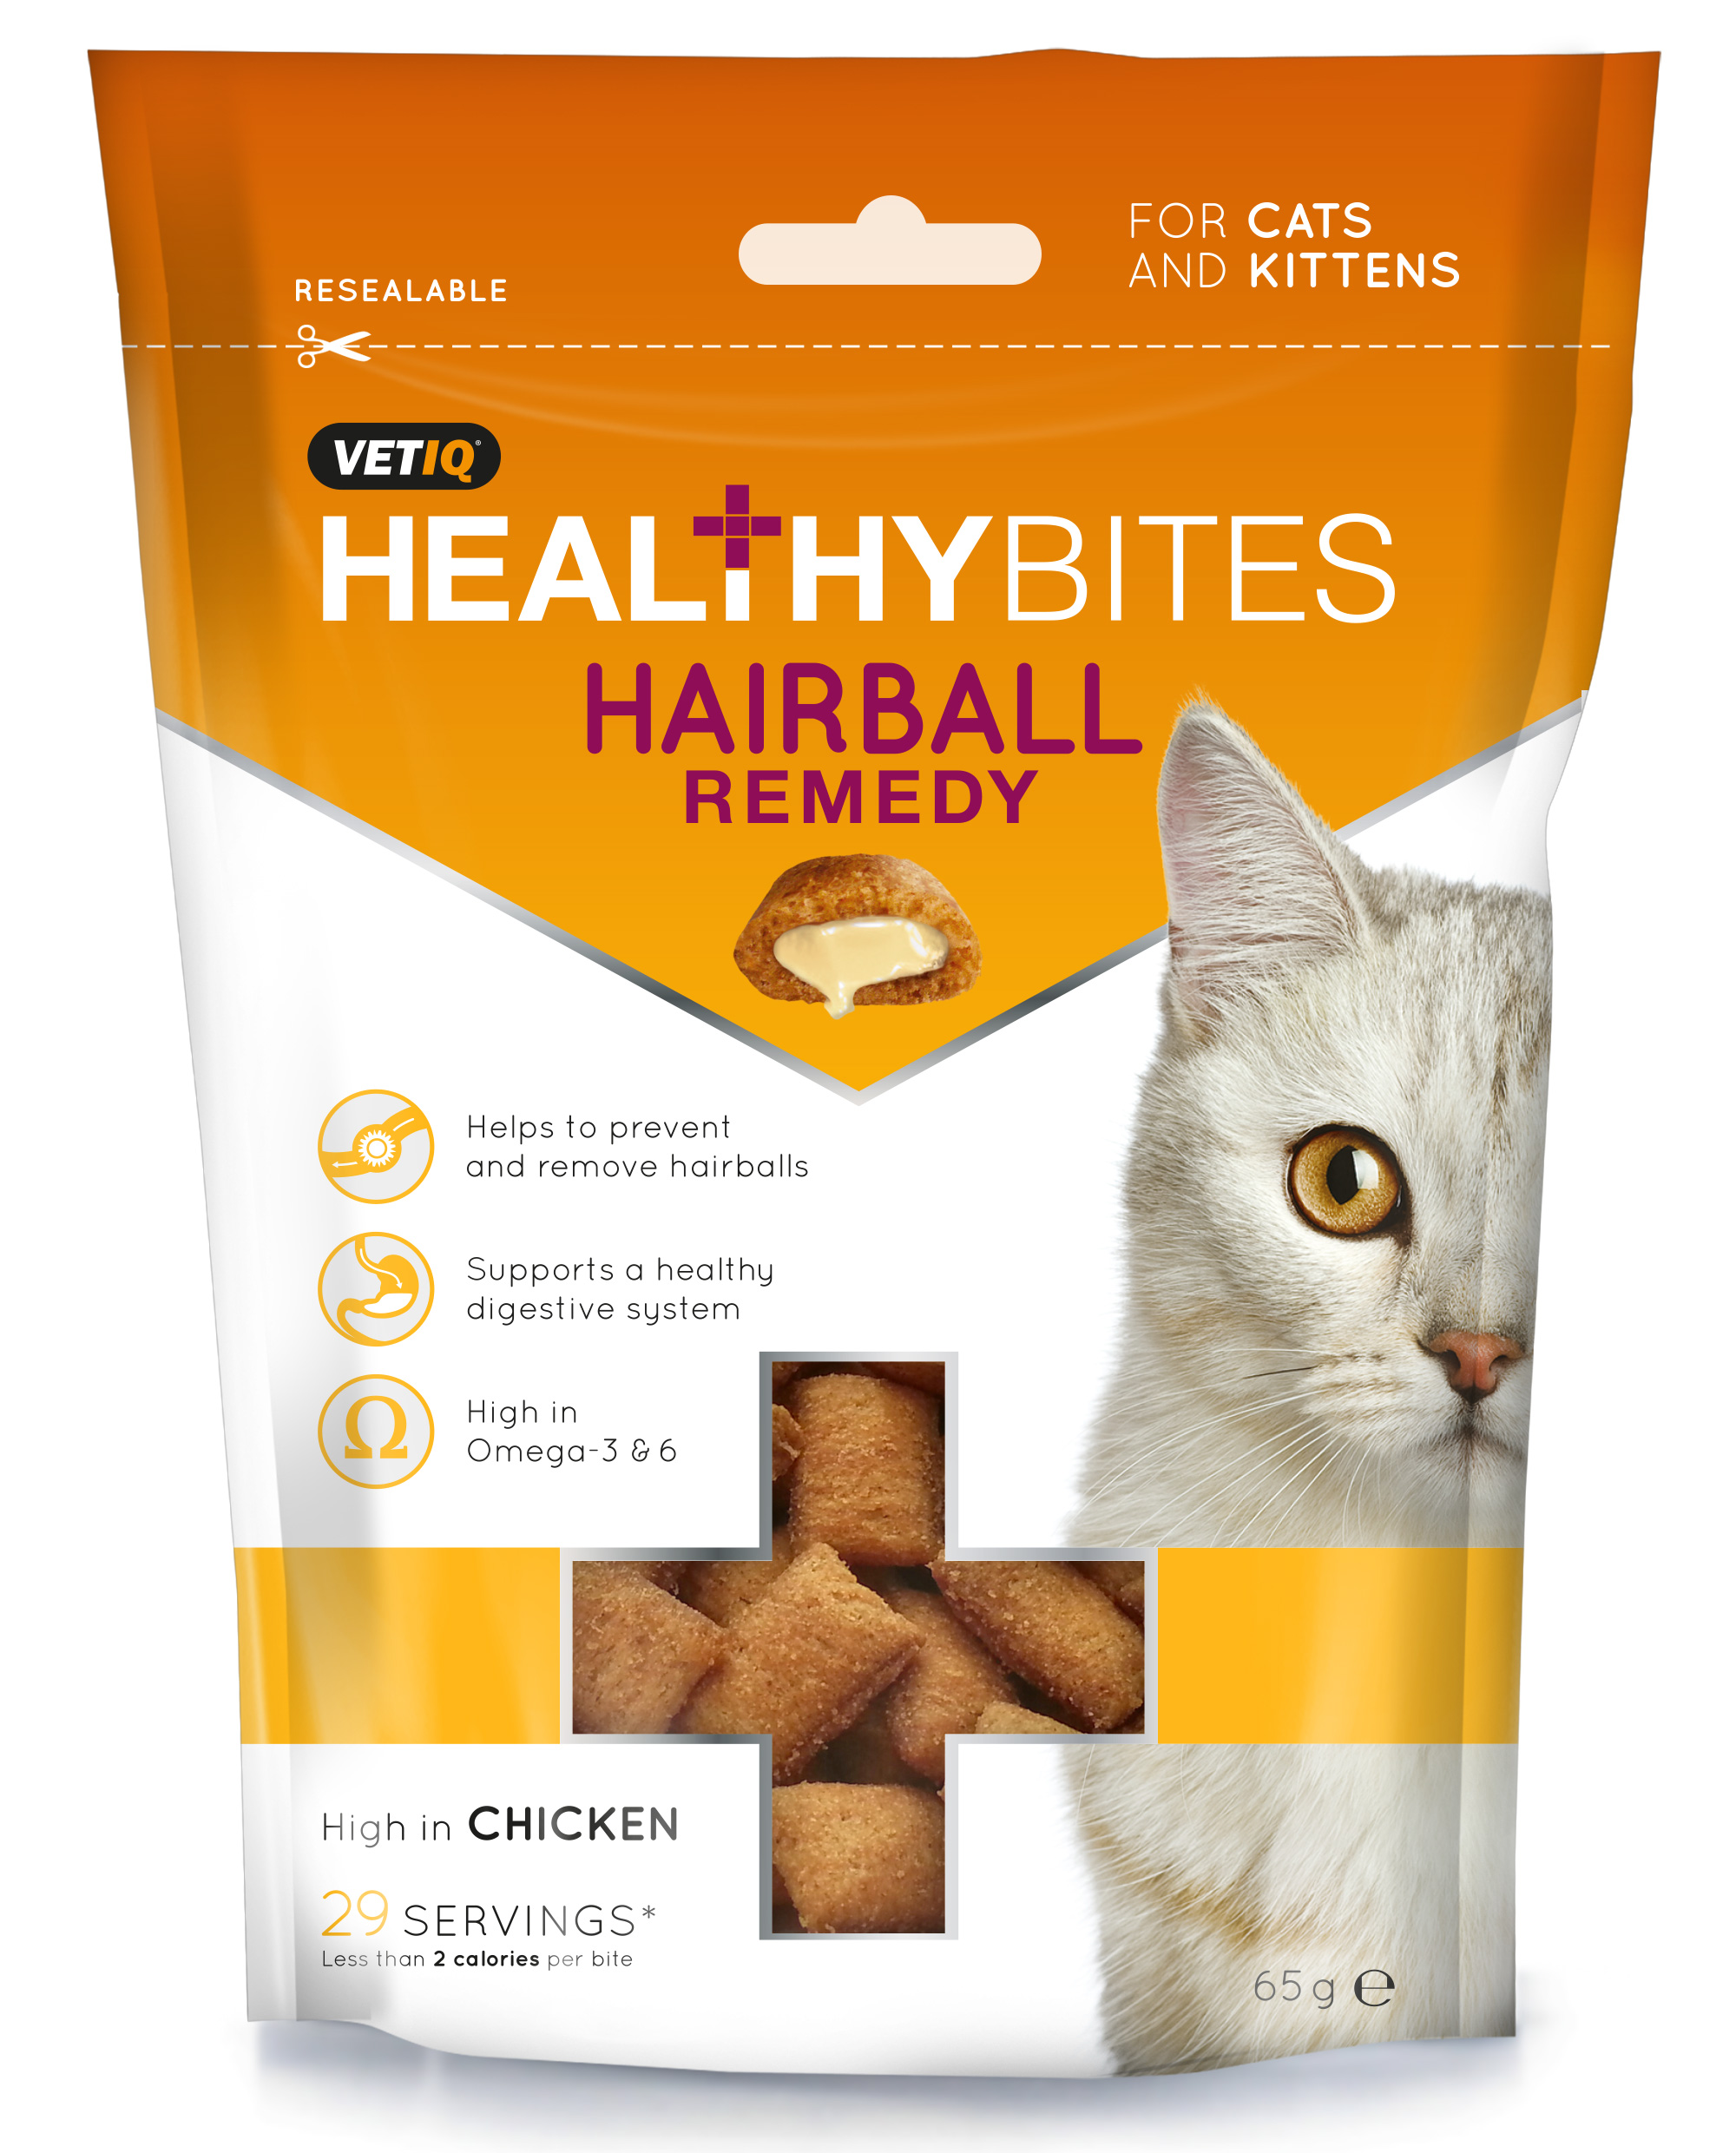 Healthy Bites Hairball Remedies